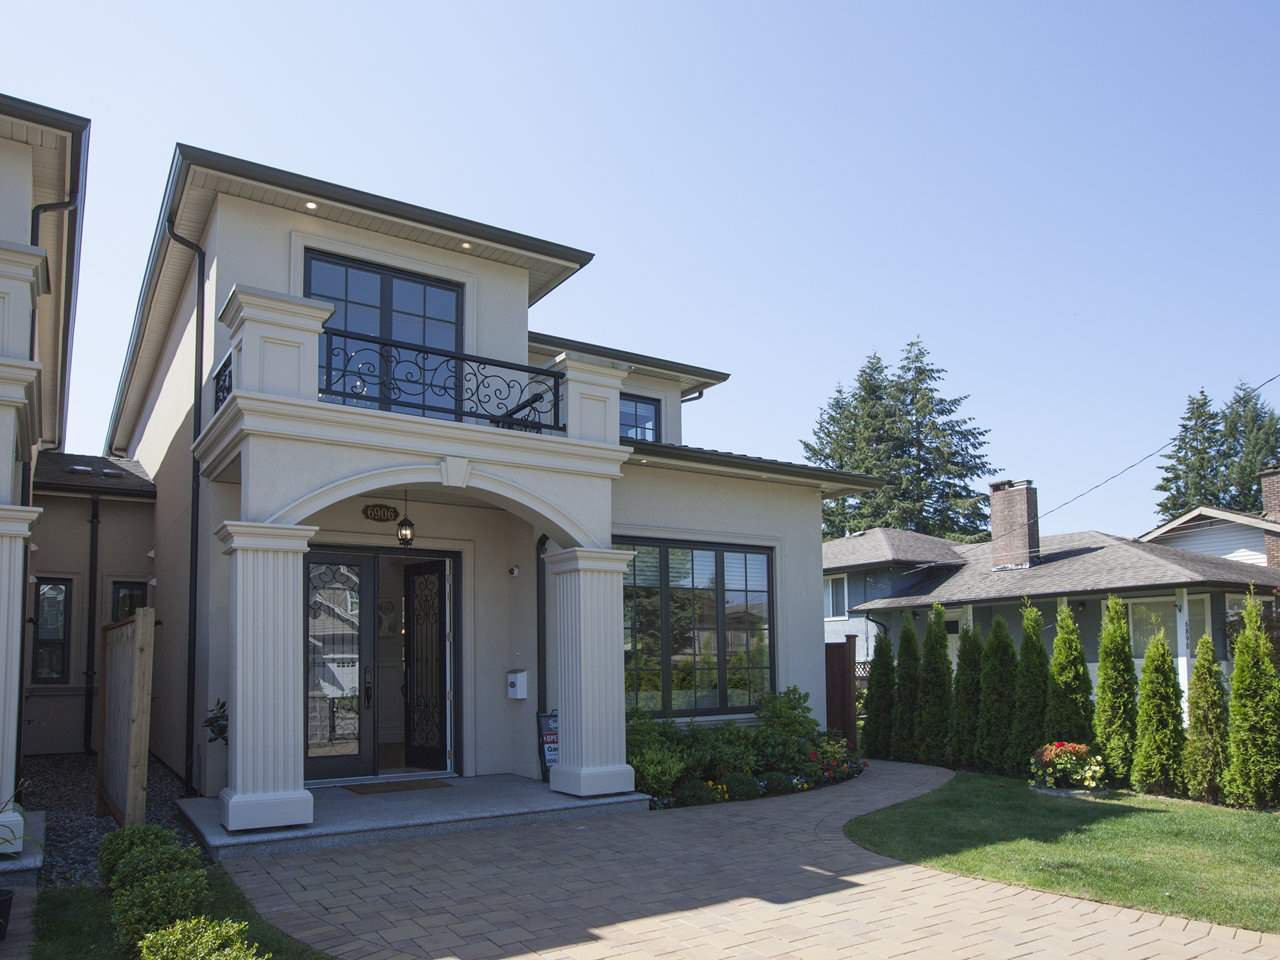 Main Photo: 6906 UNION Street in Burnaby: Sperling-Duthie House 1/2 Duplex for sale (Burnaby North)  : MLS®# R2484753